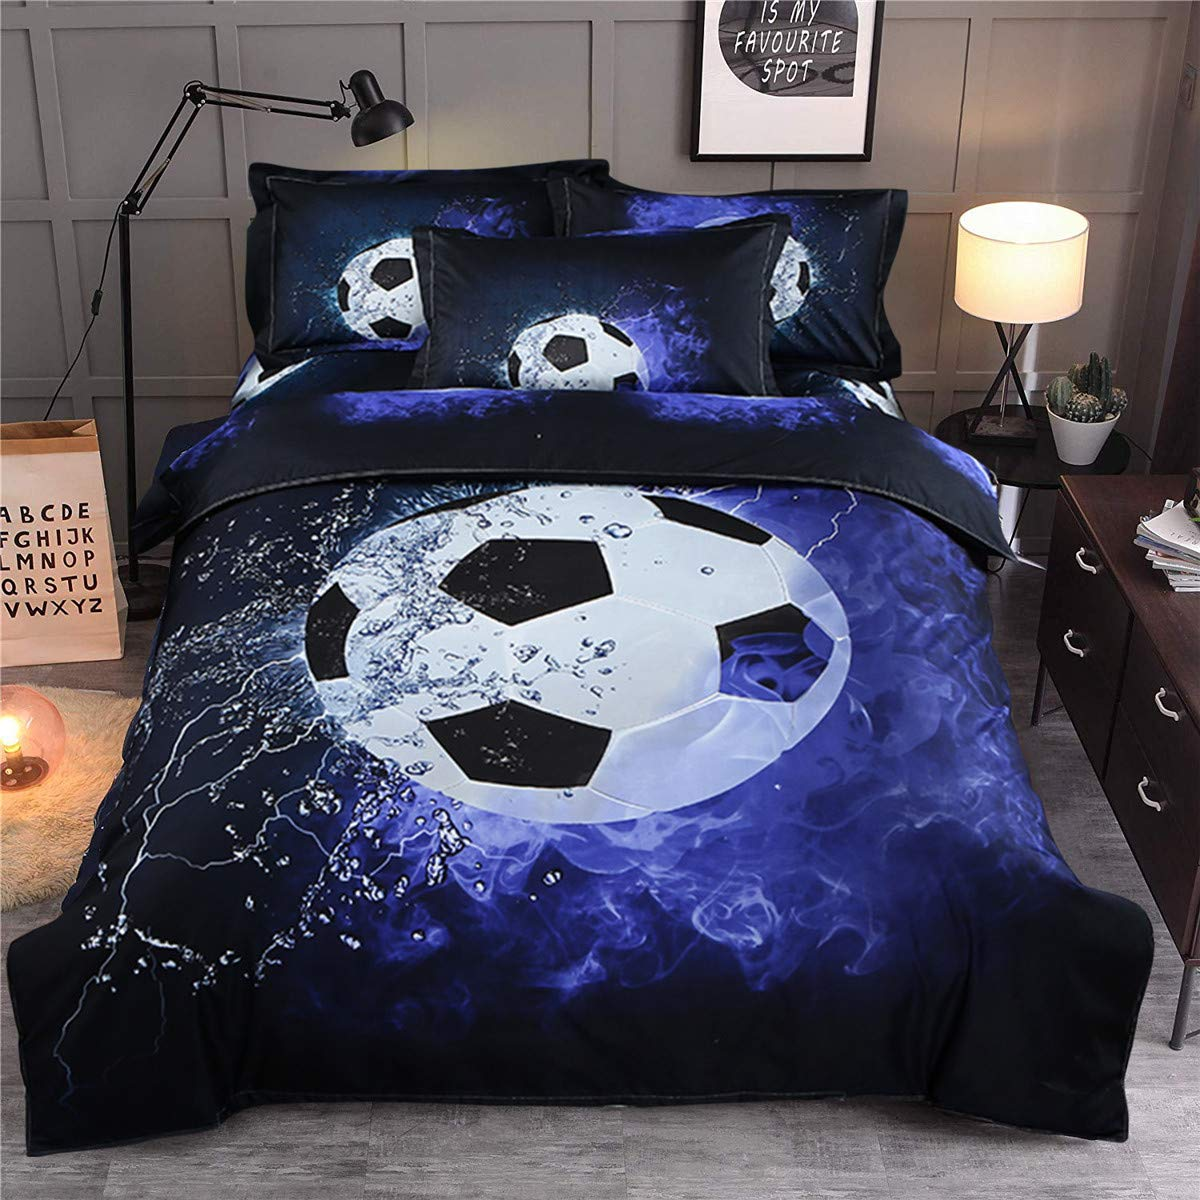 "Guidear Blue Flame Soccer Bedding Set for Children Boys,3D Printed Football Quilt Cover Set with 2 Pillowcases,Fire and Ice Duvet Cover with Zipper Closure Queen Size 90"" X 90"""